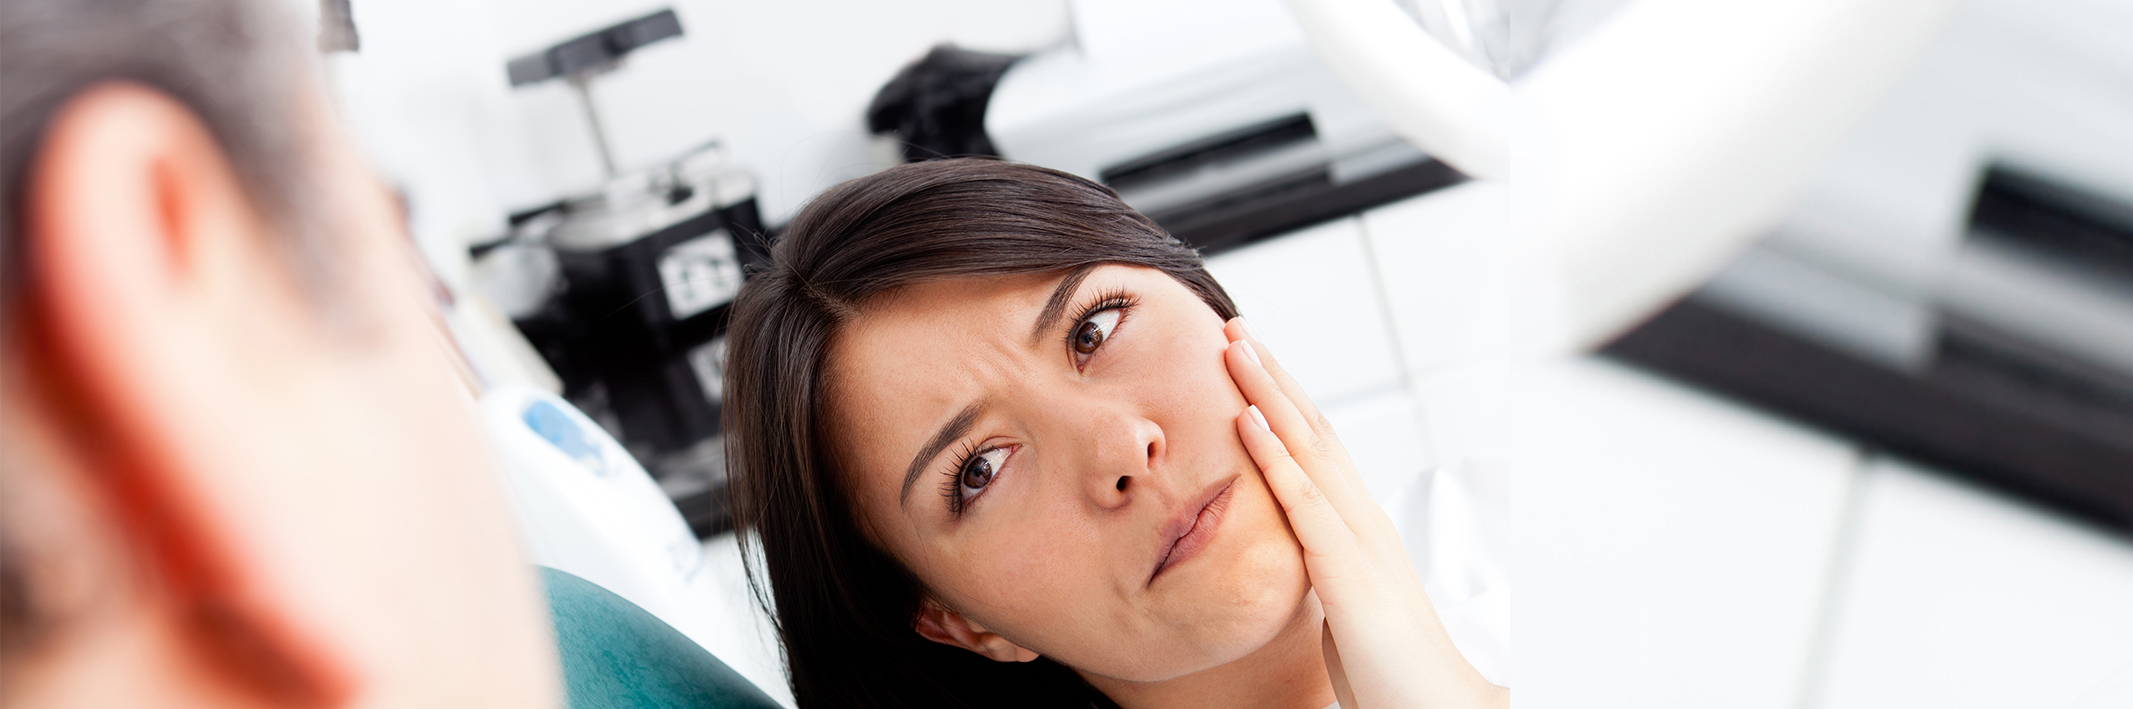 What Is Causing Your Toothache?